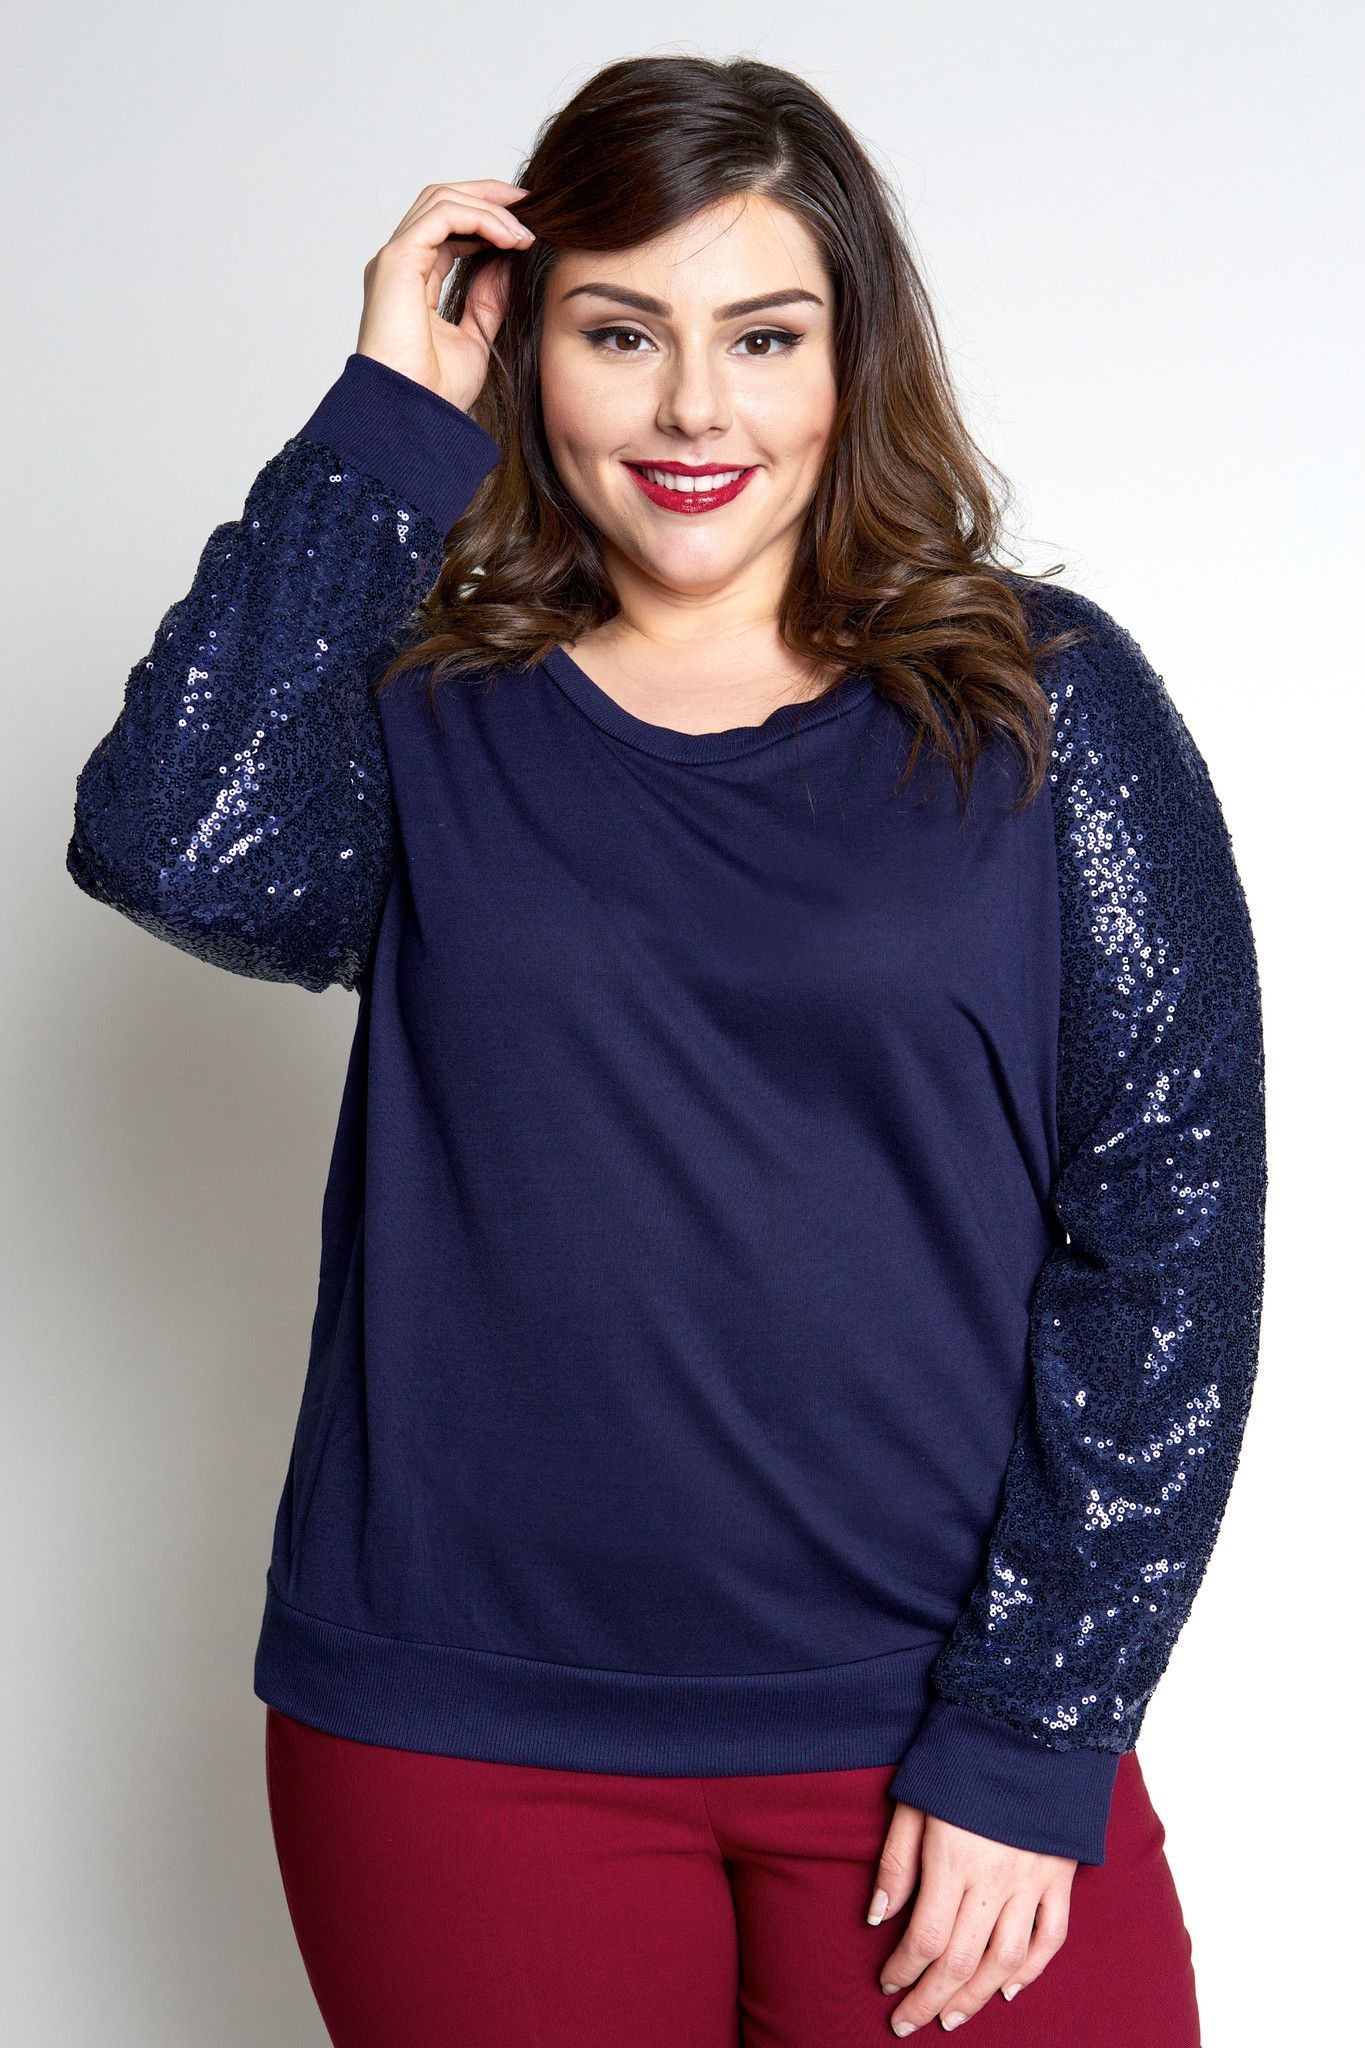 Plus size clothing for women jessica kane sequined sweater navy